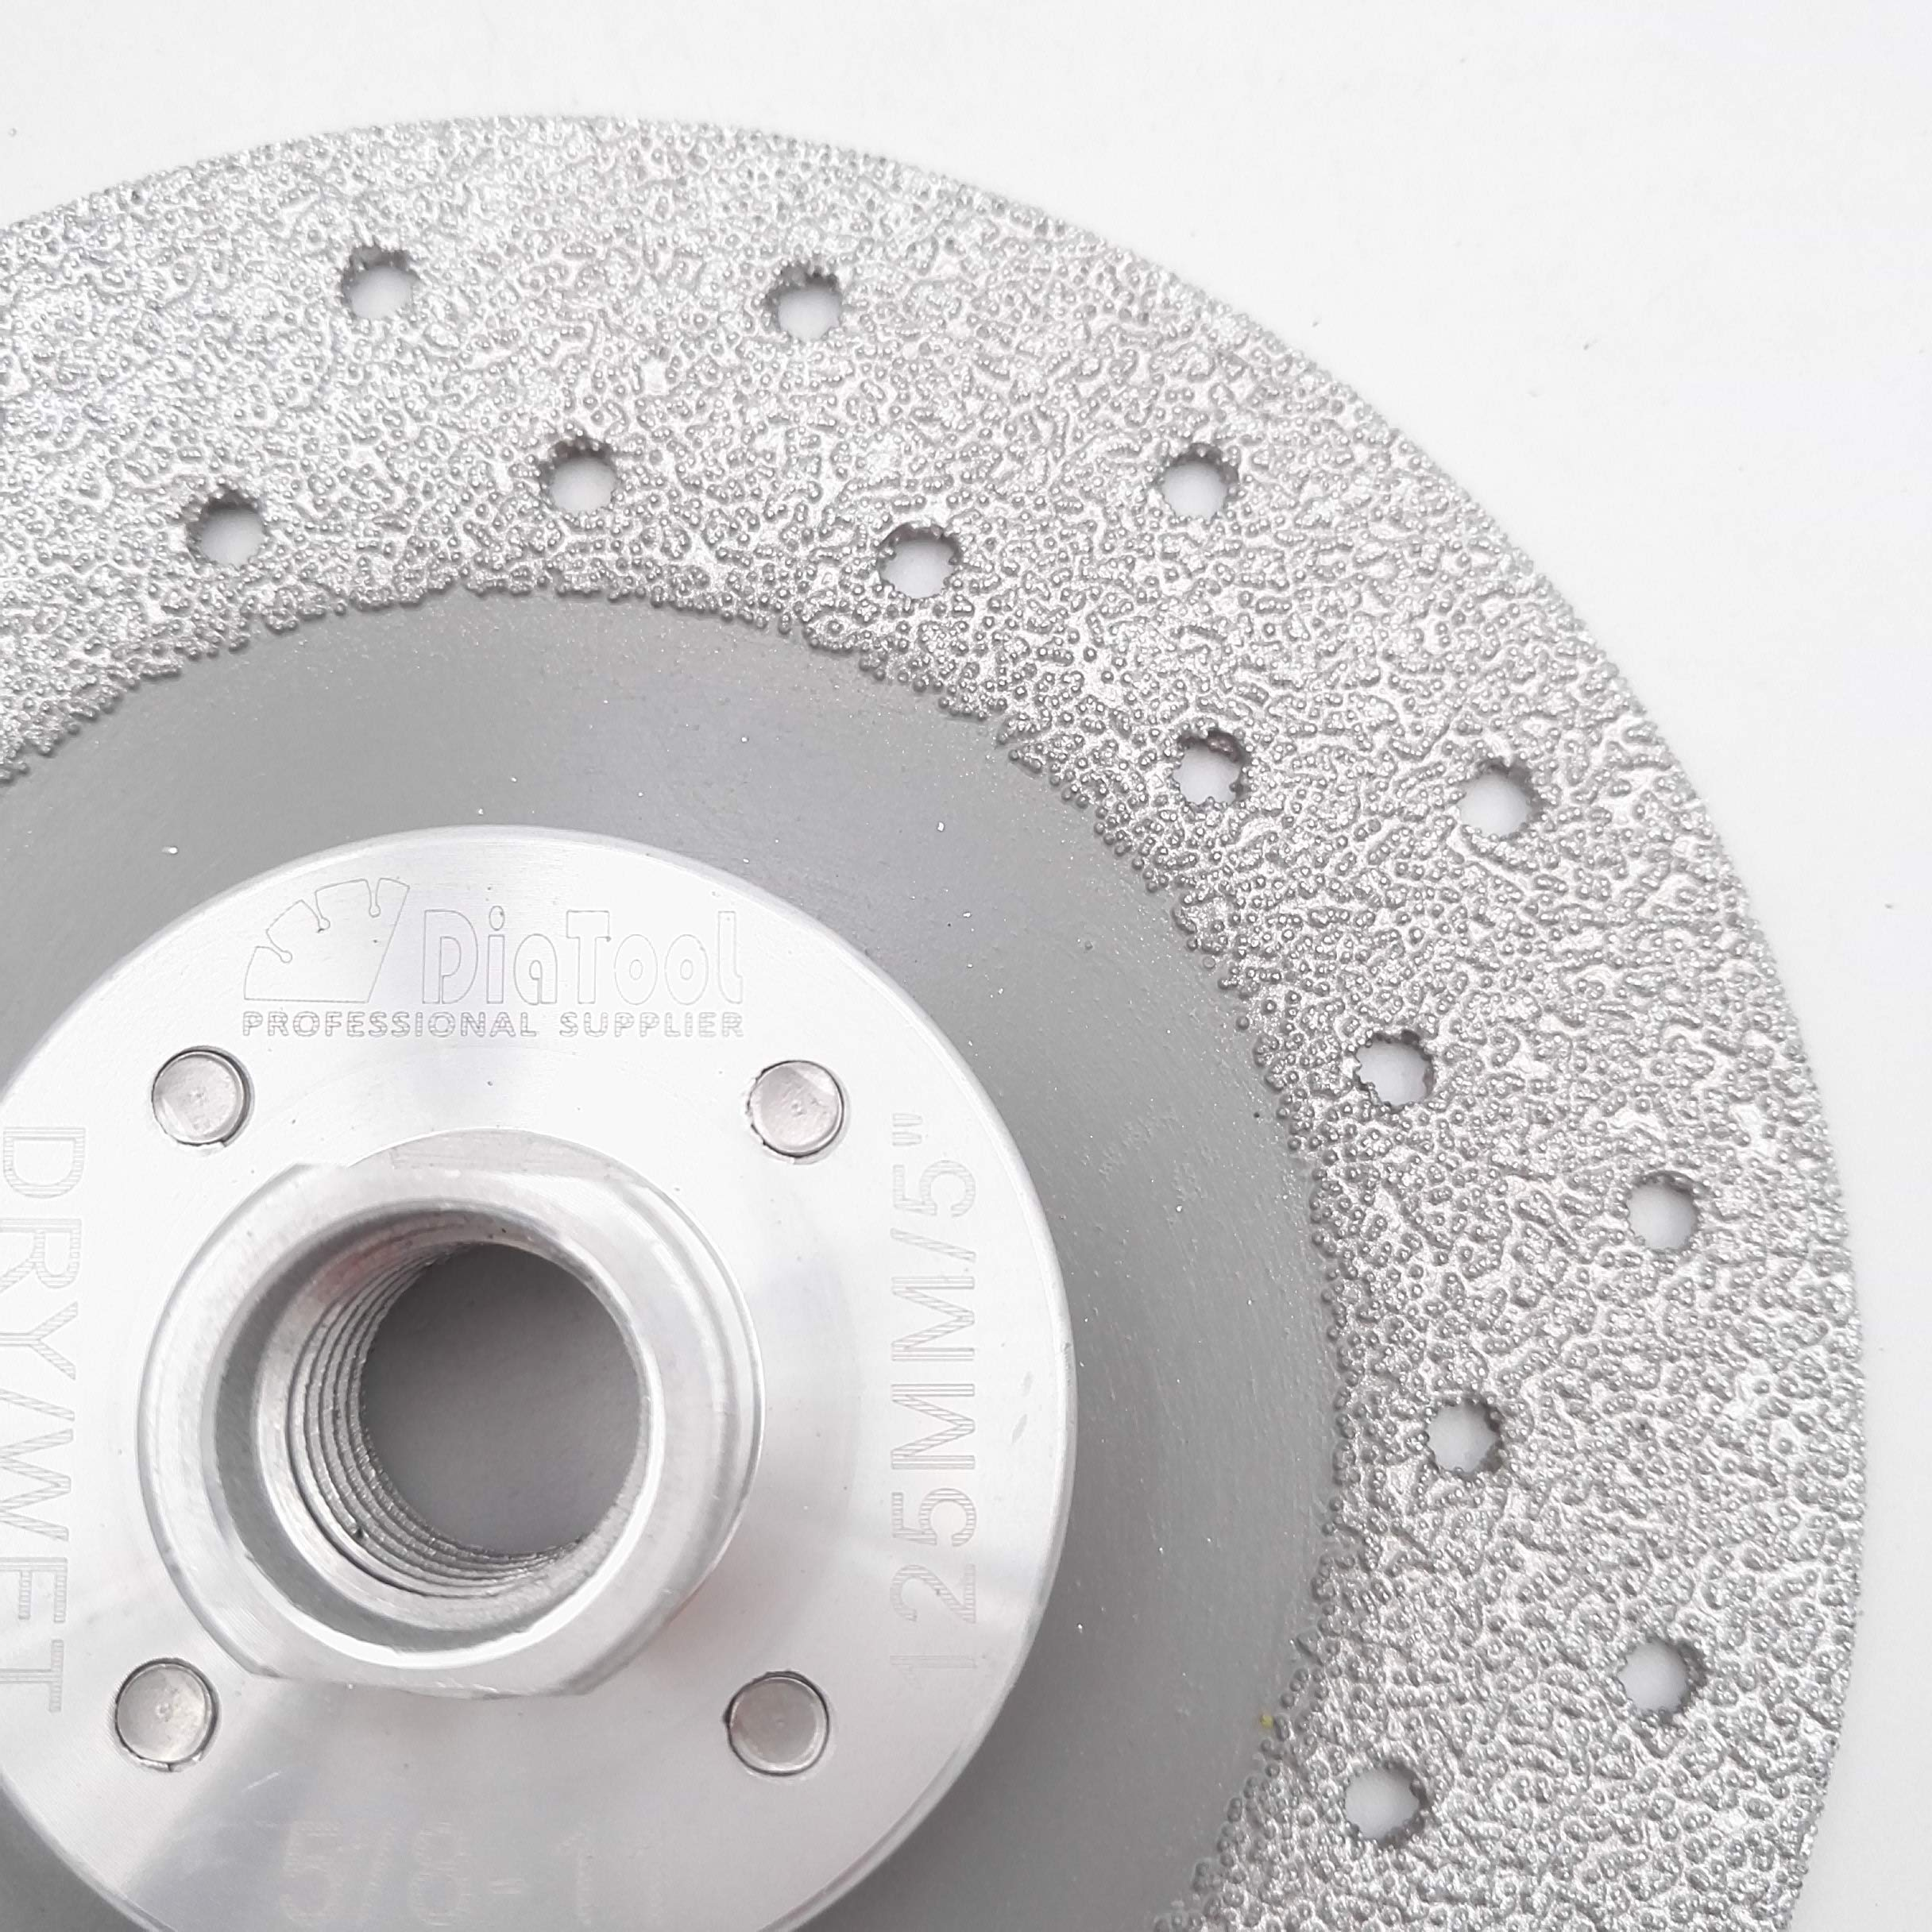 DIATOOL Diamond Cutting Grinding Disc 5 inch Double Sided Vacuum Brazed Fast cutting shaping grinding Marble Ceramic by DIATOOL (Image #4)